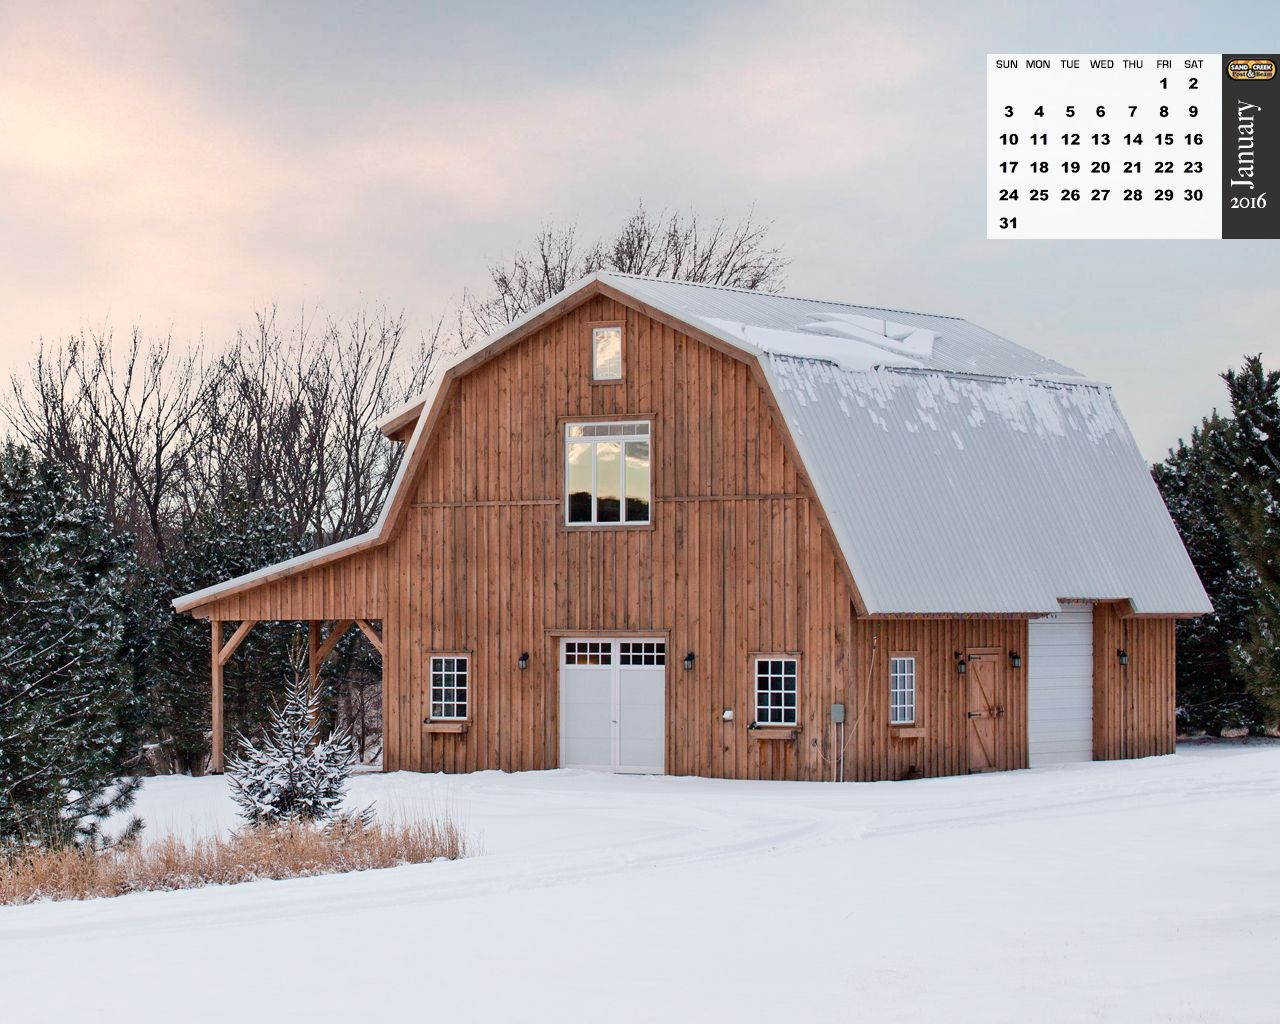 Traditional wood barn projects photo galleries for Wood barn homes